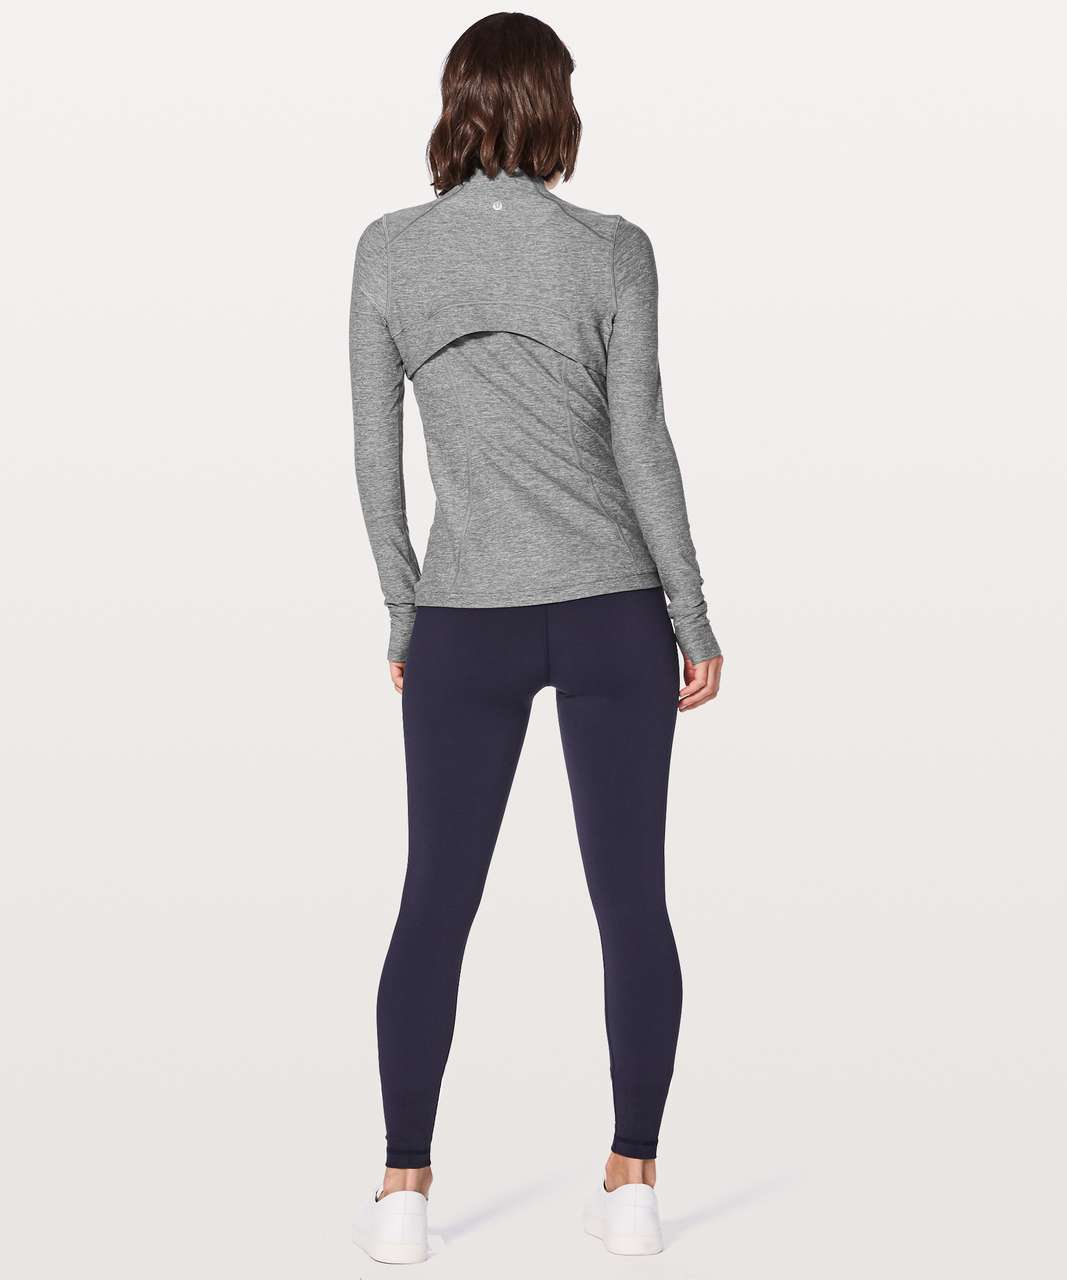 Lululemon Define Pullover - Heathered Slate